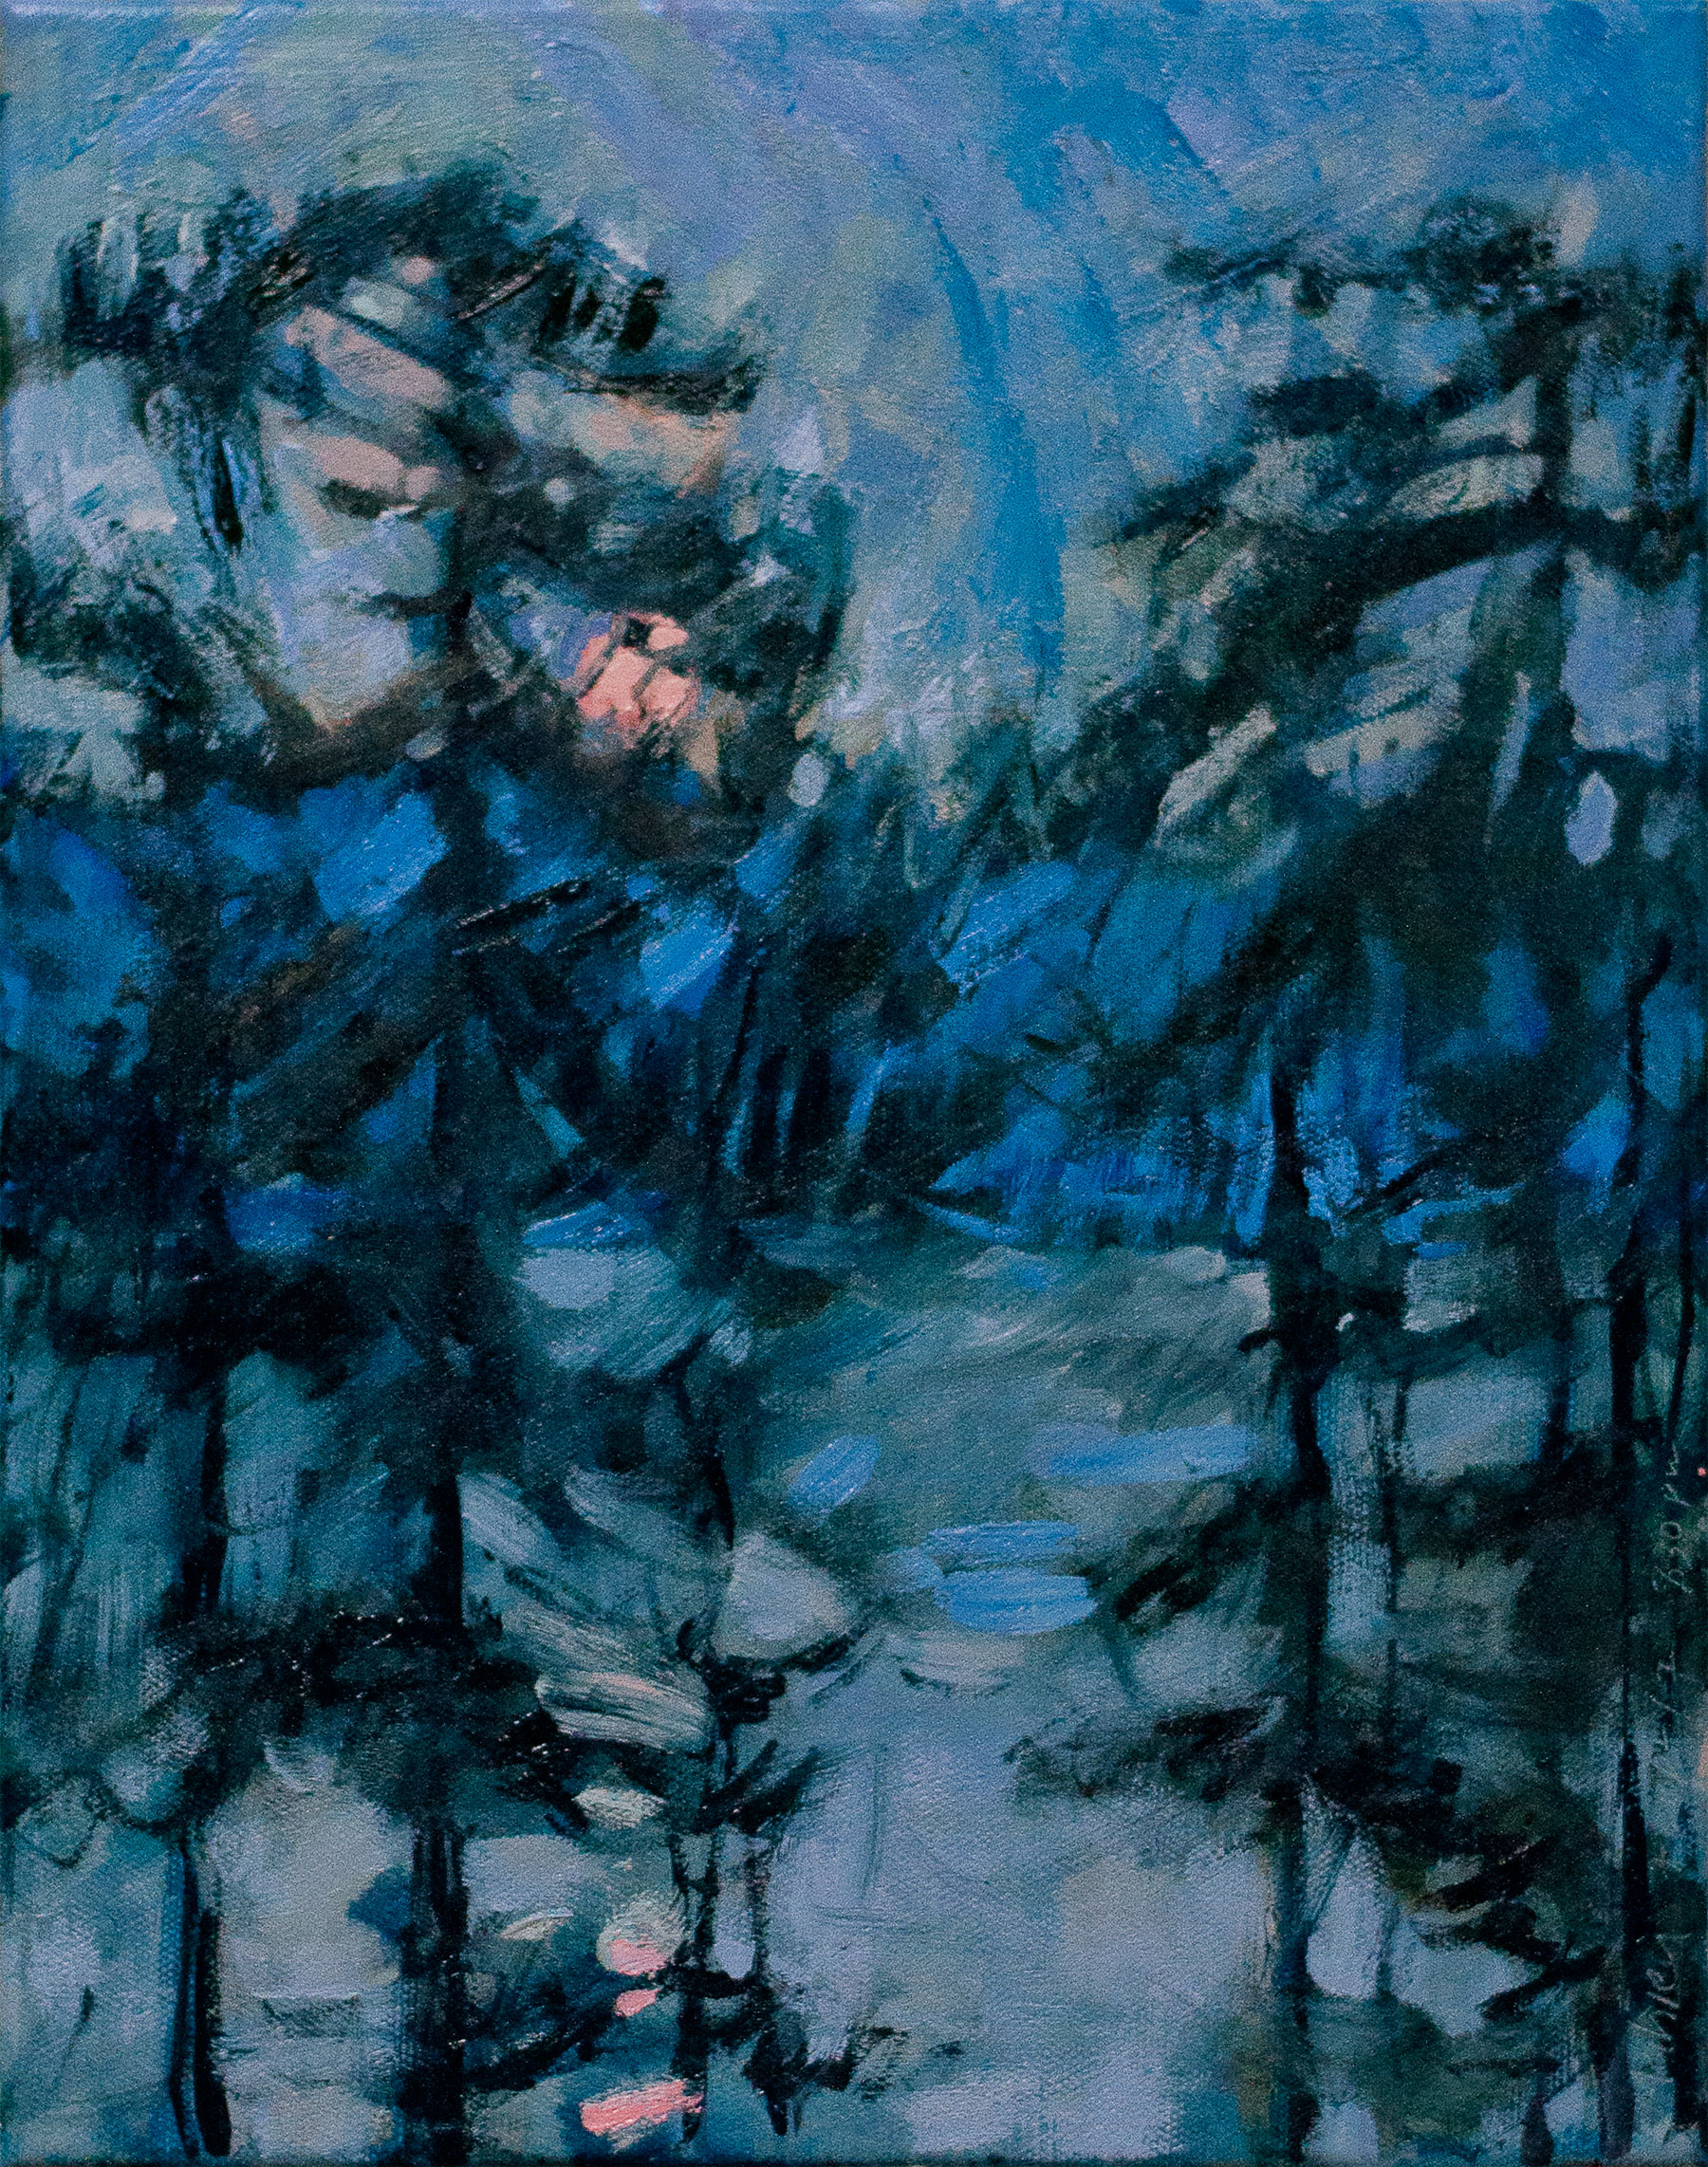 Moonrise in Prussian Blue